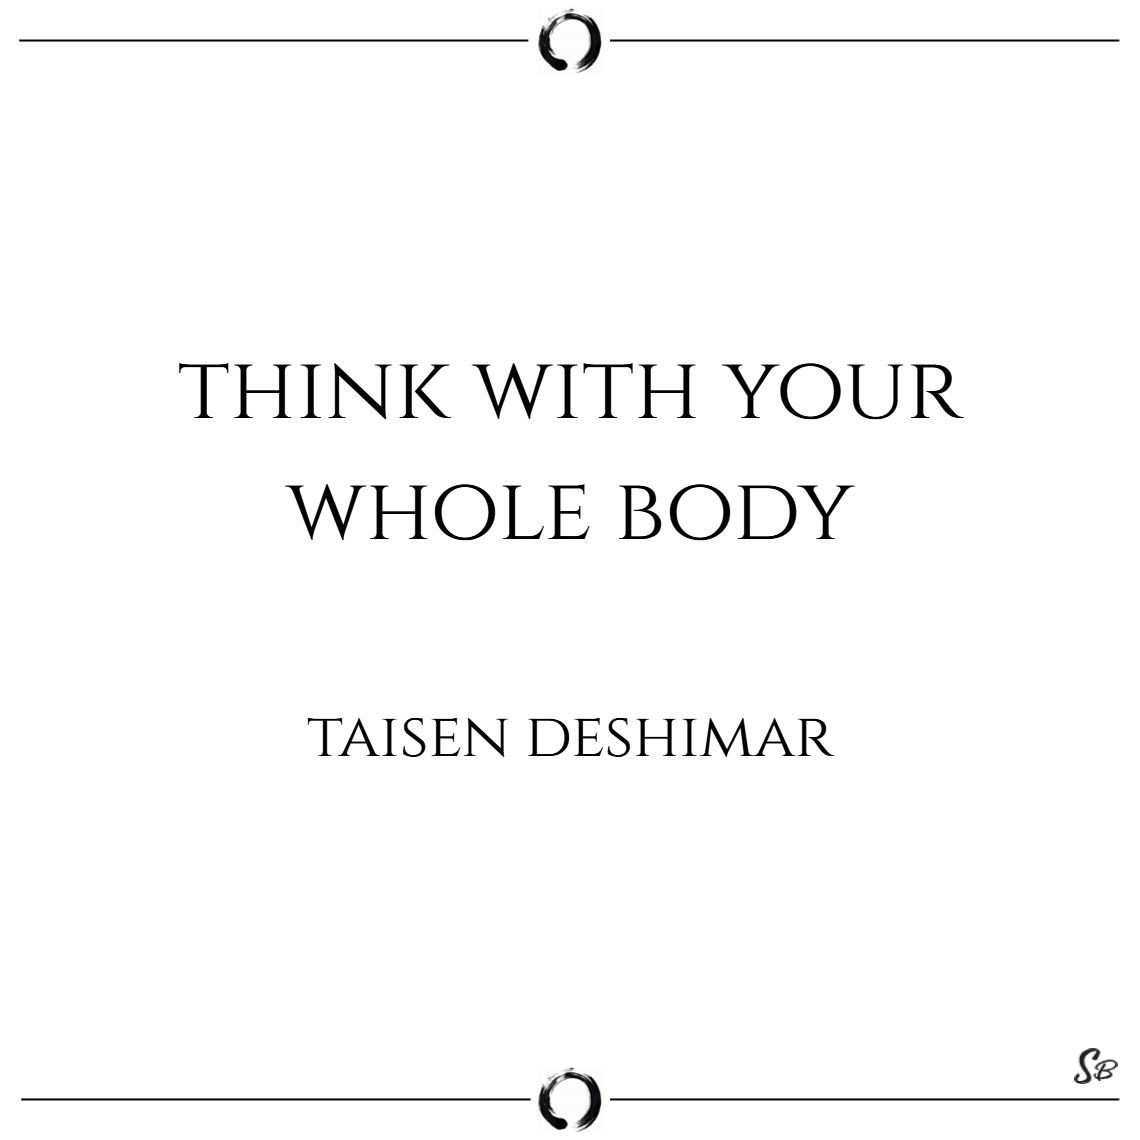 Think with your whole body. – taisen deshimar